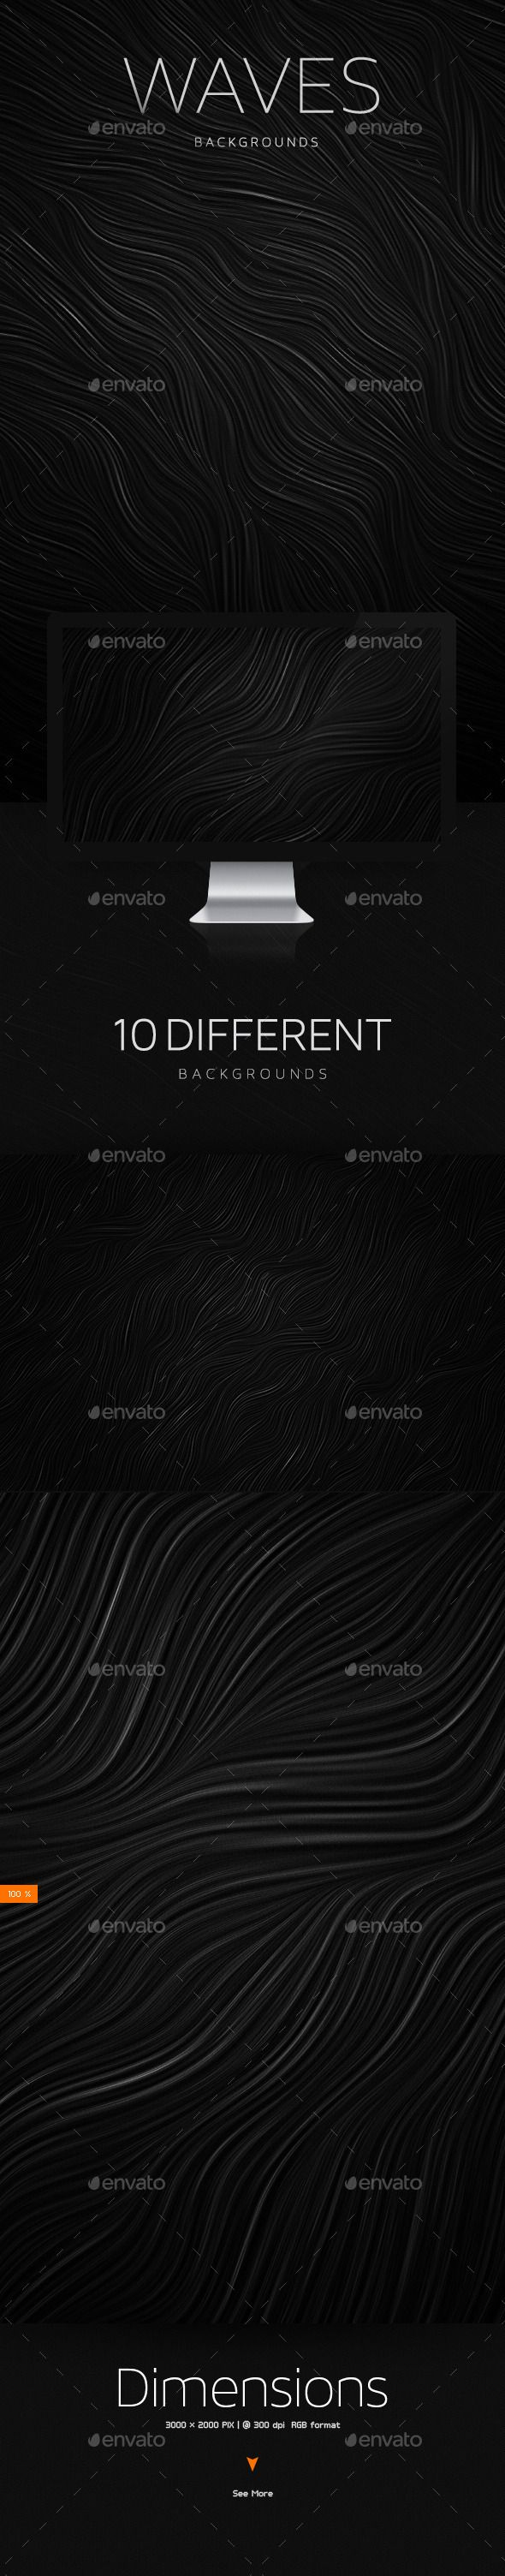 Waves Subtle Textures Backgrounds Patterns Image. Download here: http://graphicriver.net/item/waves-subtle-textures-backgrounds/10609497?s_rank=1797&ref=yinkira